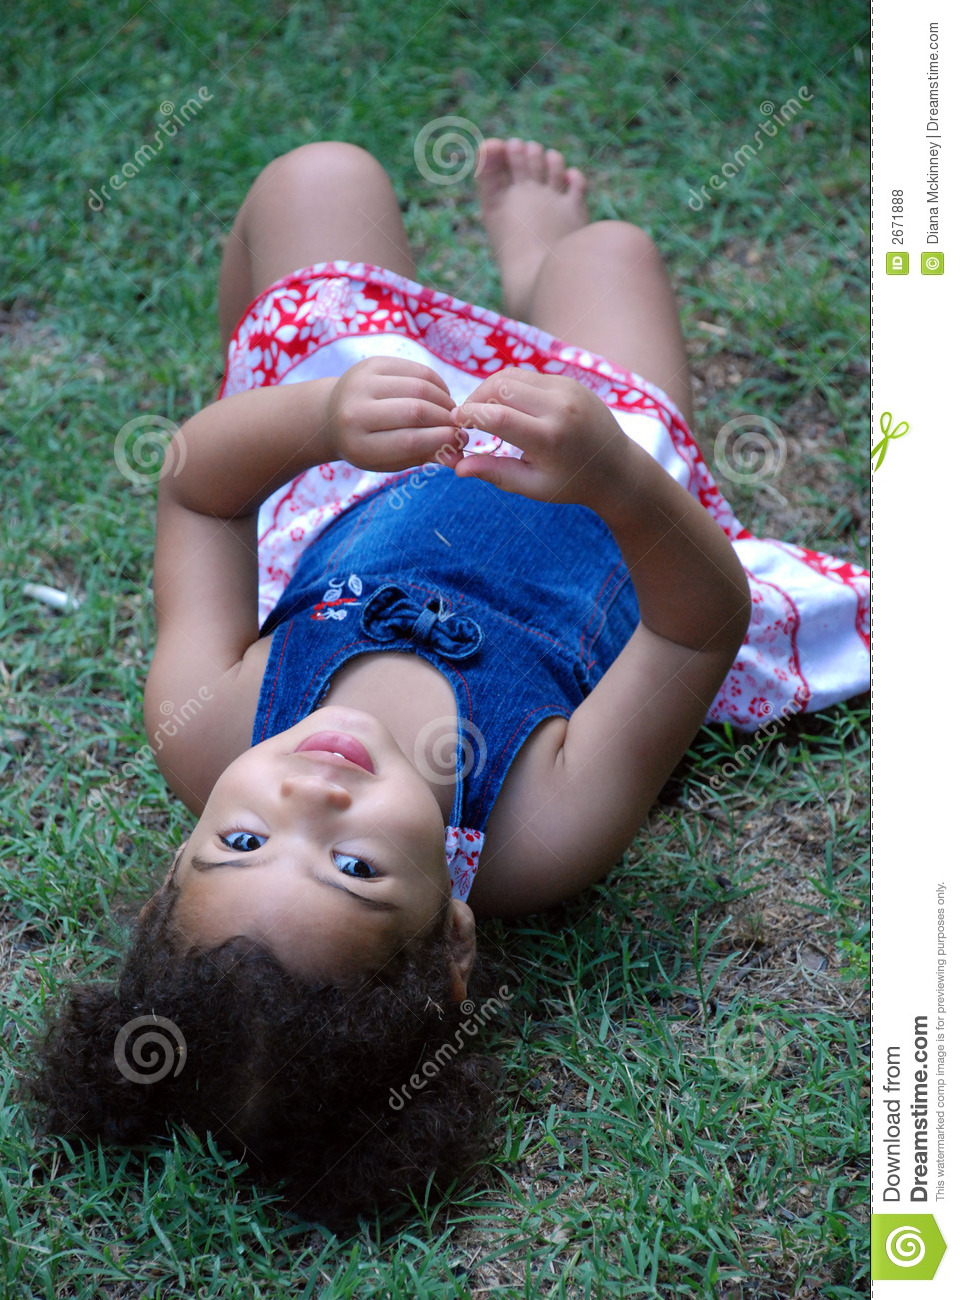 Little Girl Laying In Grass Royalty Free Stock Photos - Image: 2671888: www.dreamstime.com/royalty-free-stock-photos-little-girl-laying...